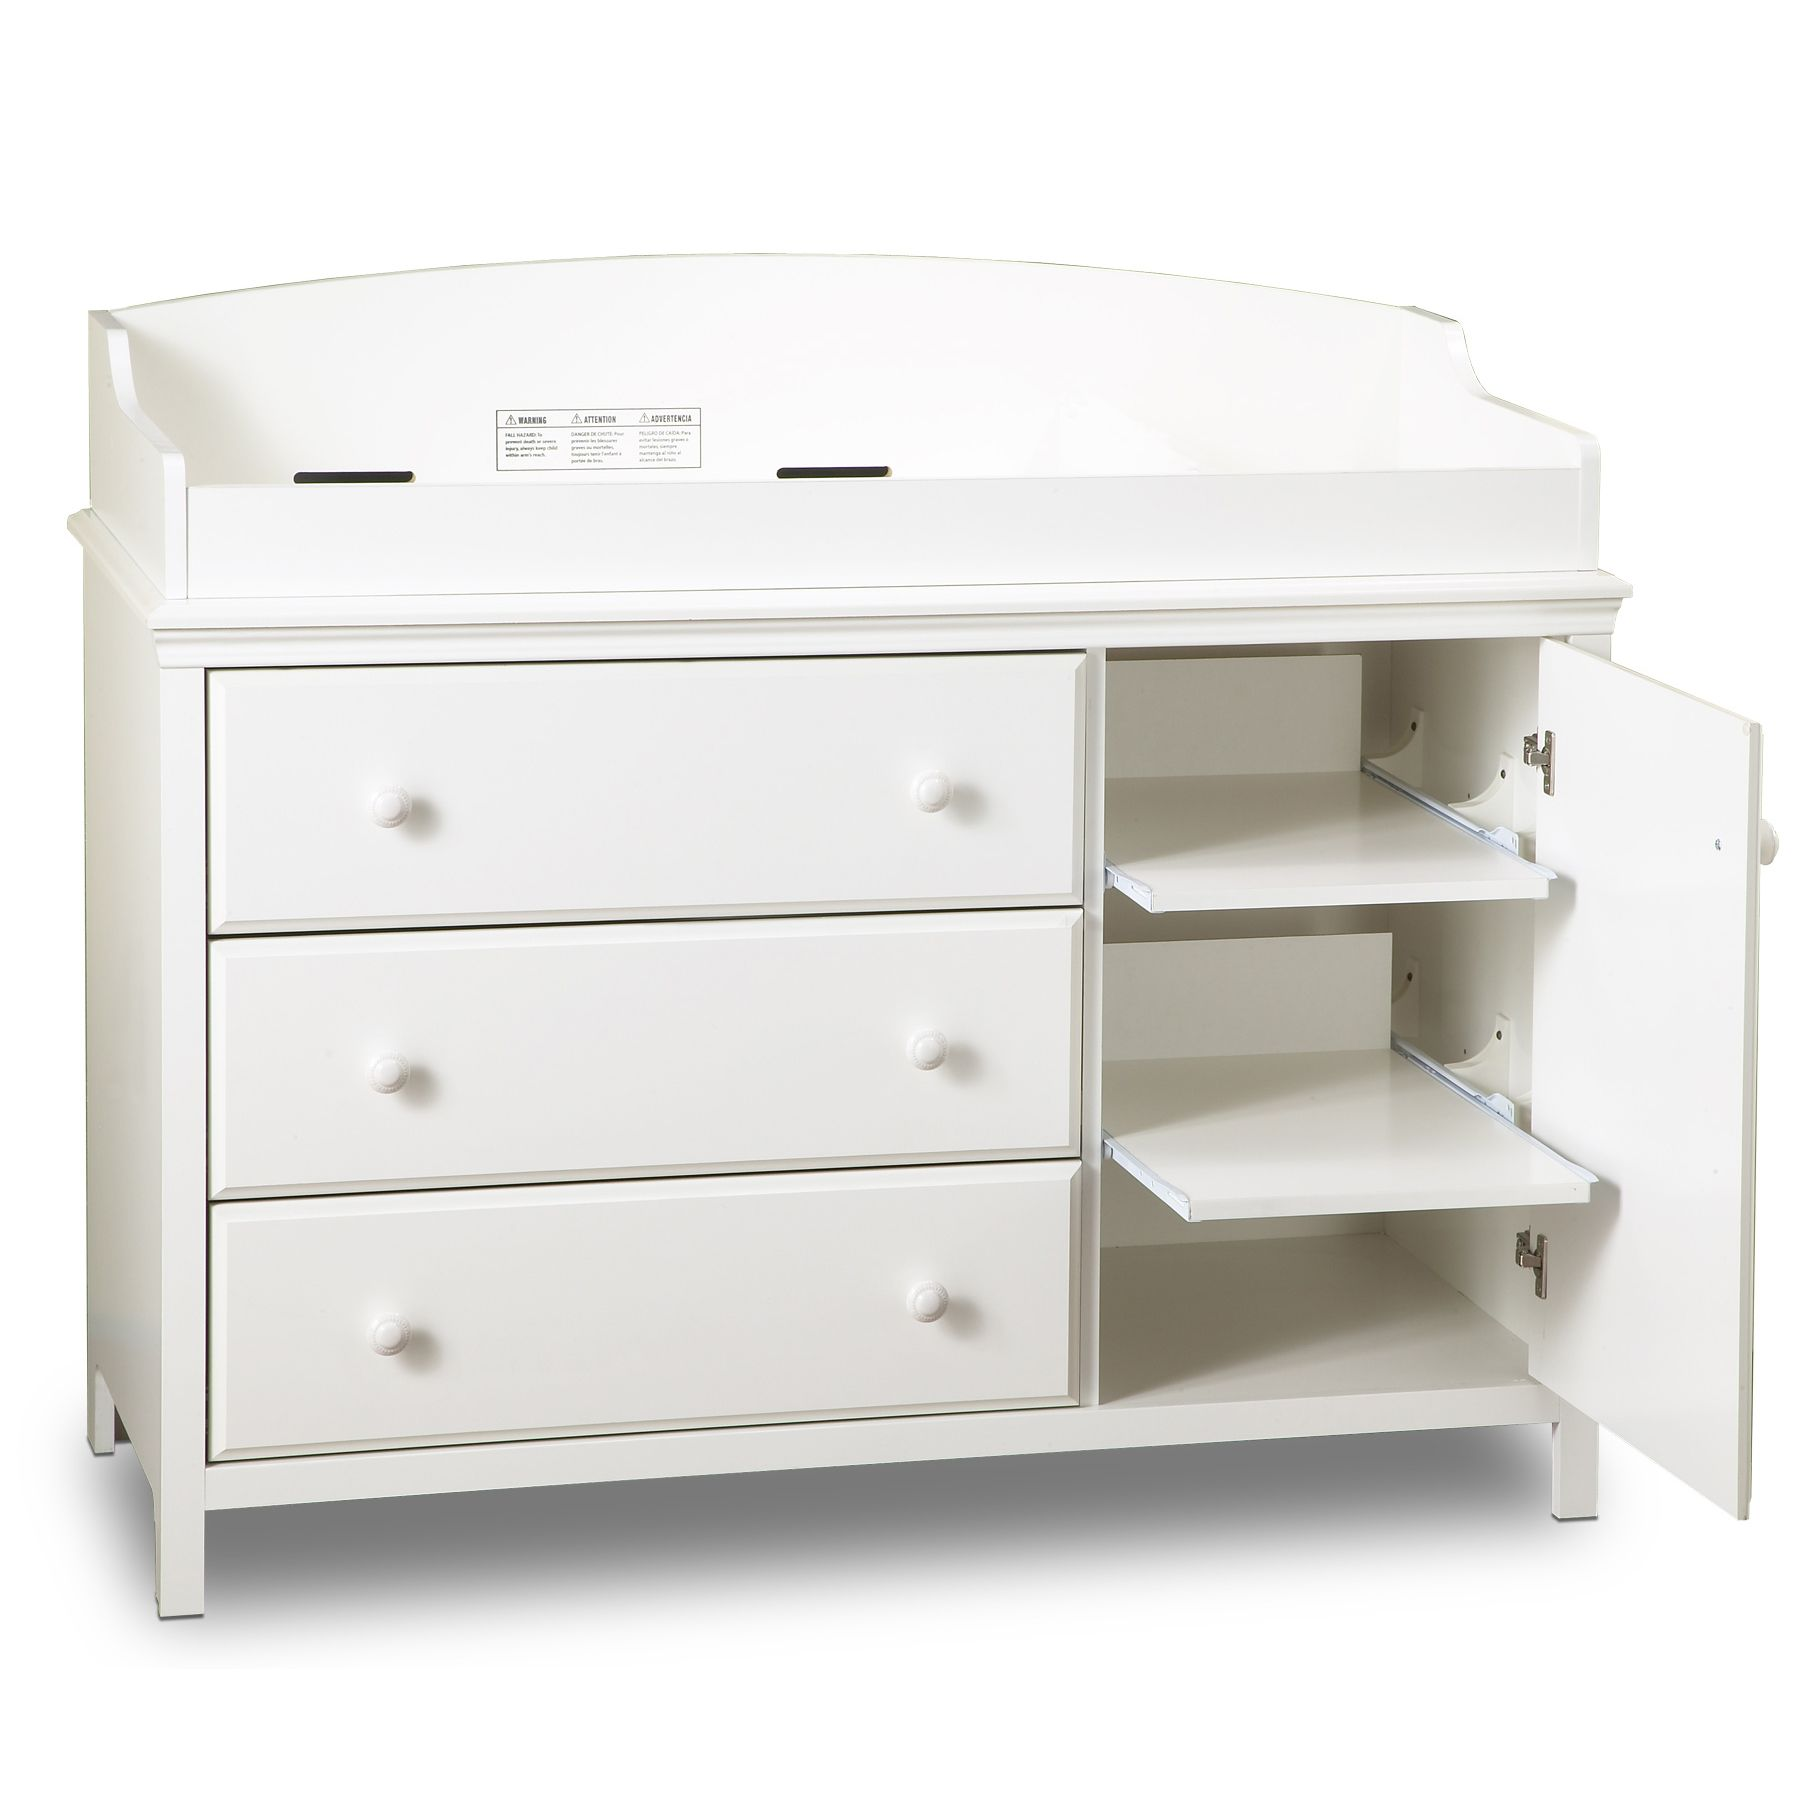 Cute white baby changing table south shore cotton candy changing table - pure white - baby - baby gngcvec